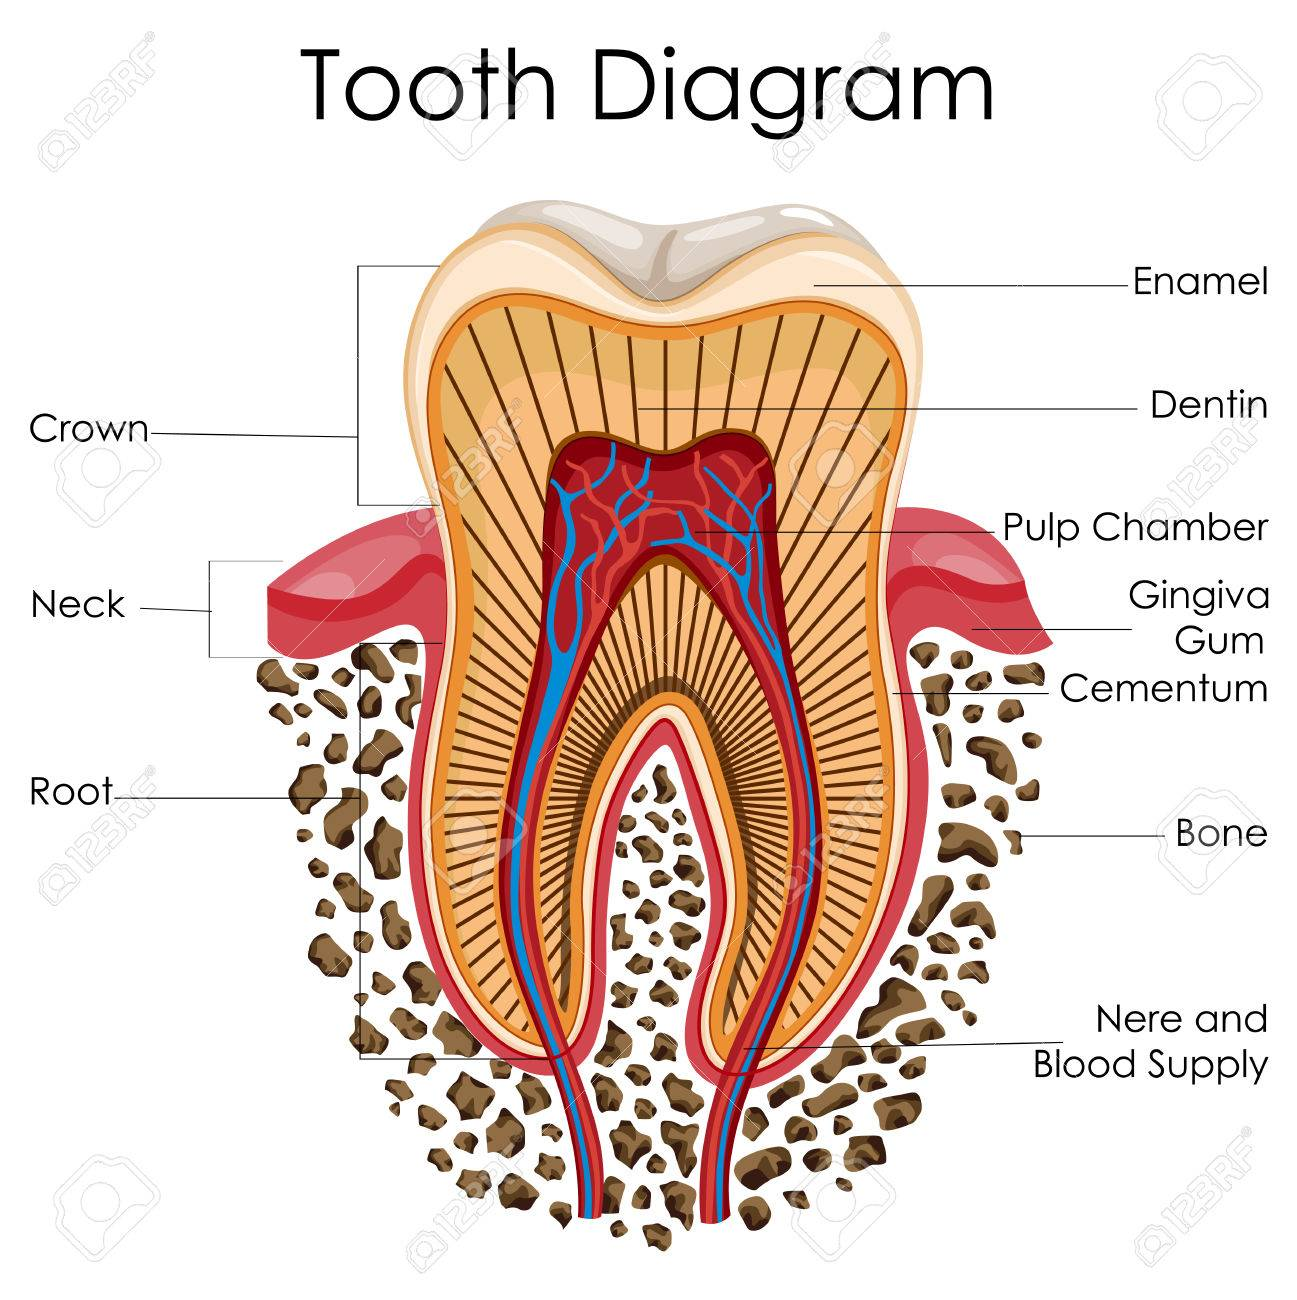 Diagram Of Tooth Anatomy 213lawi24